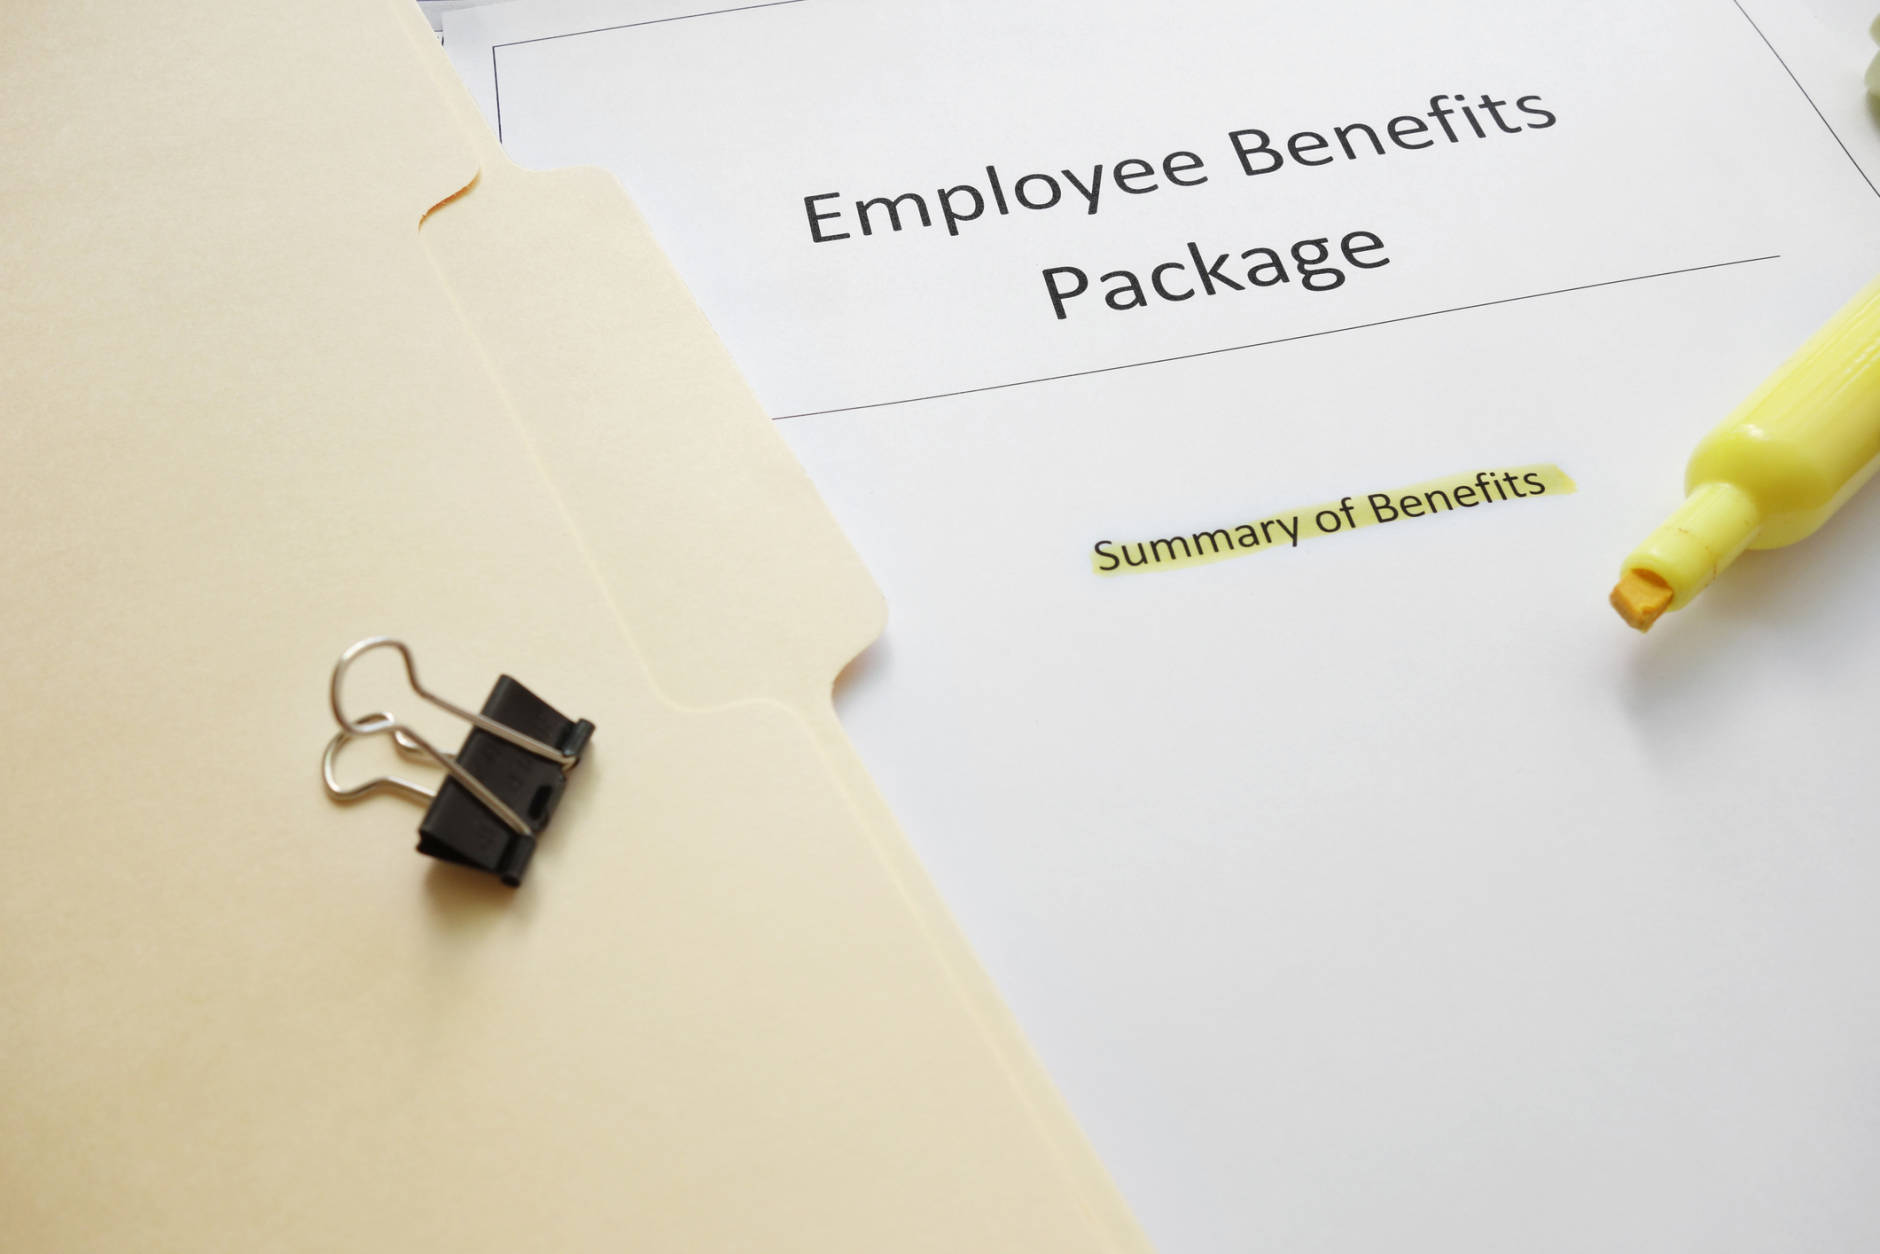 Employee benefits documents with highlighted text